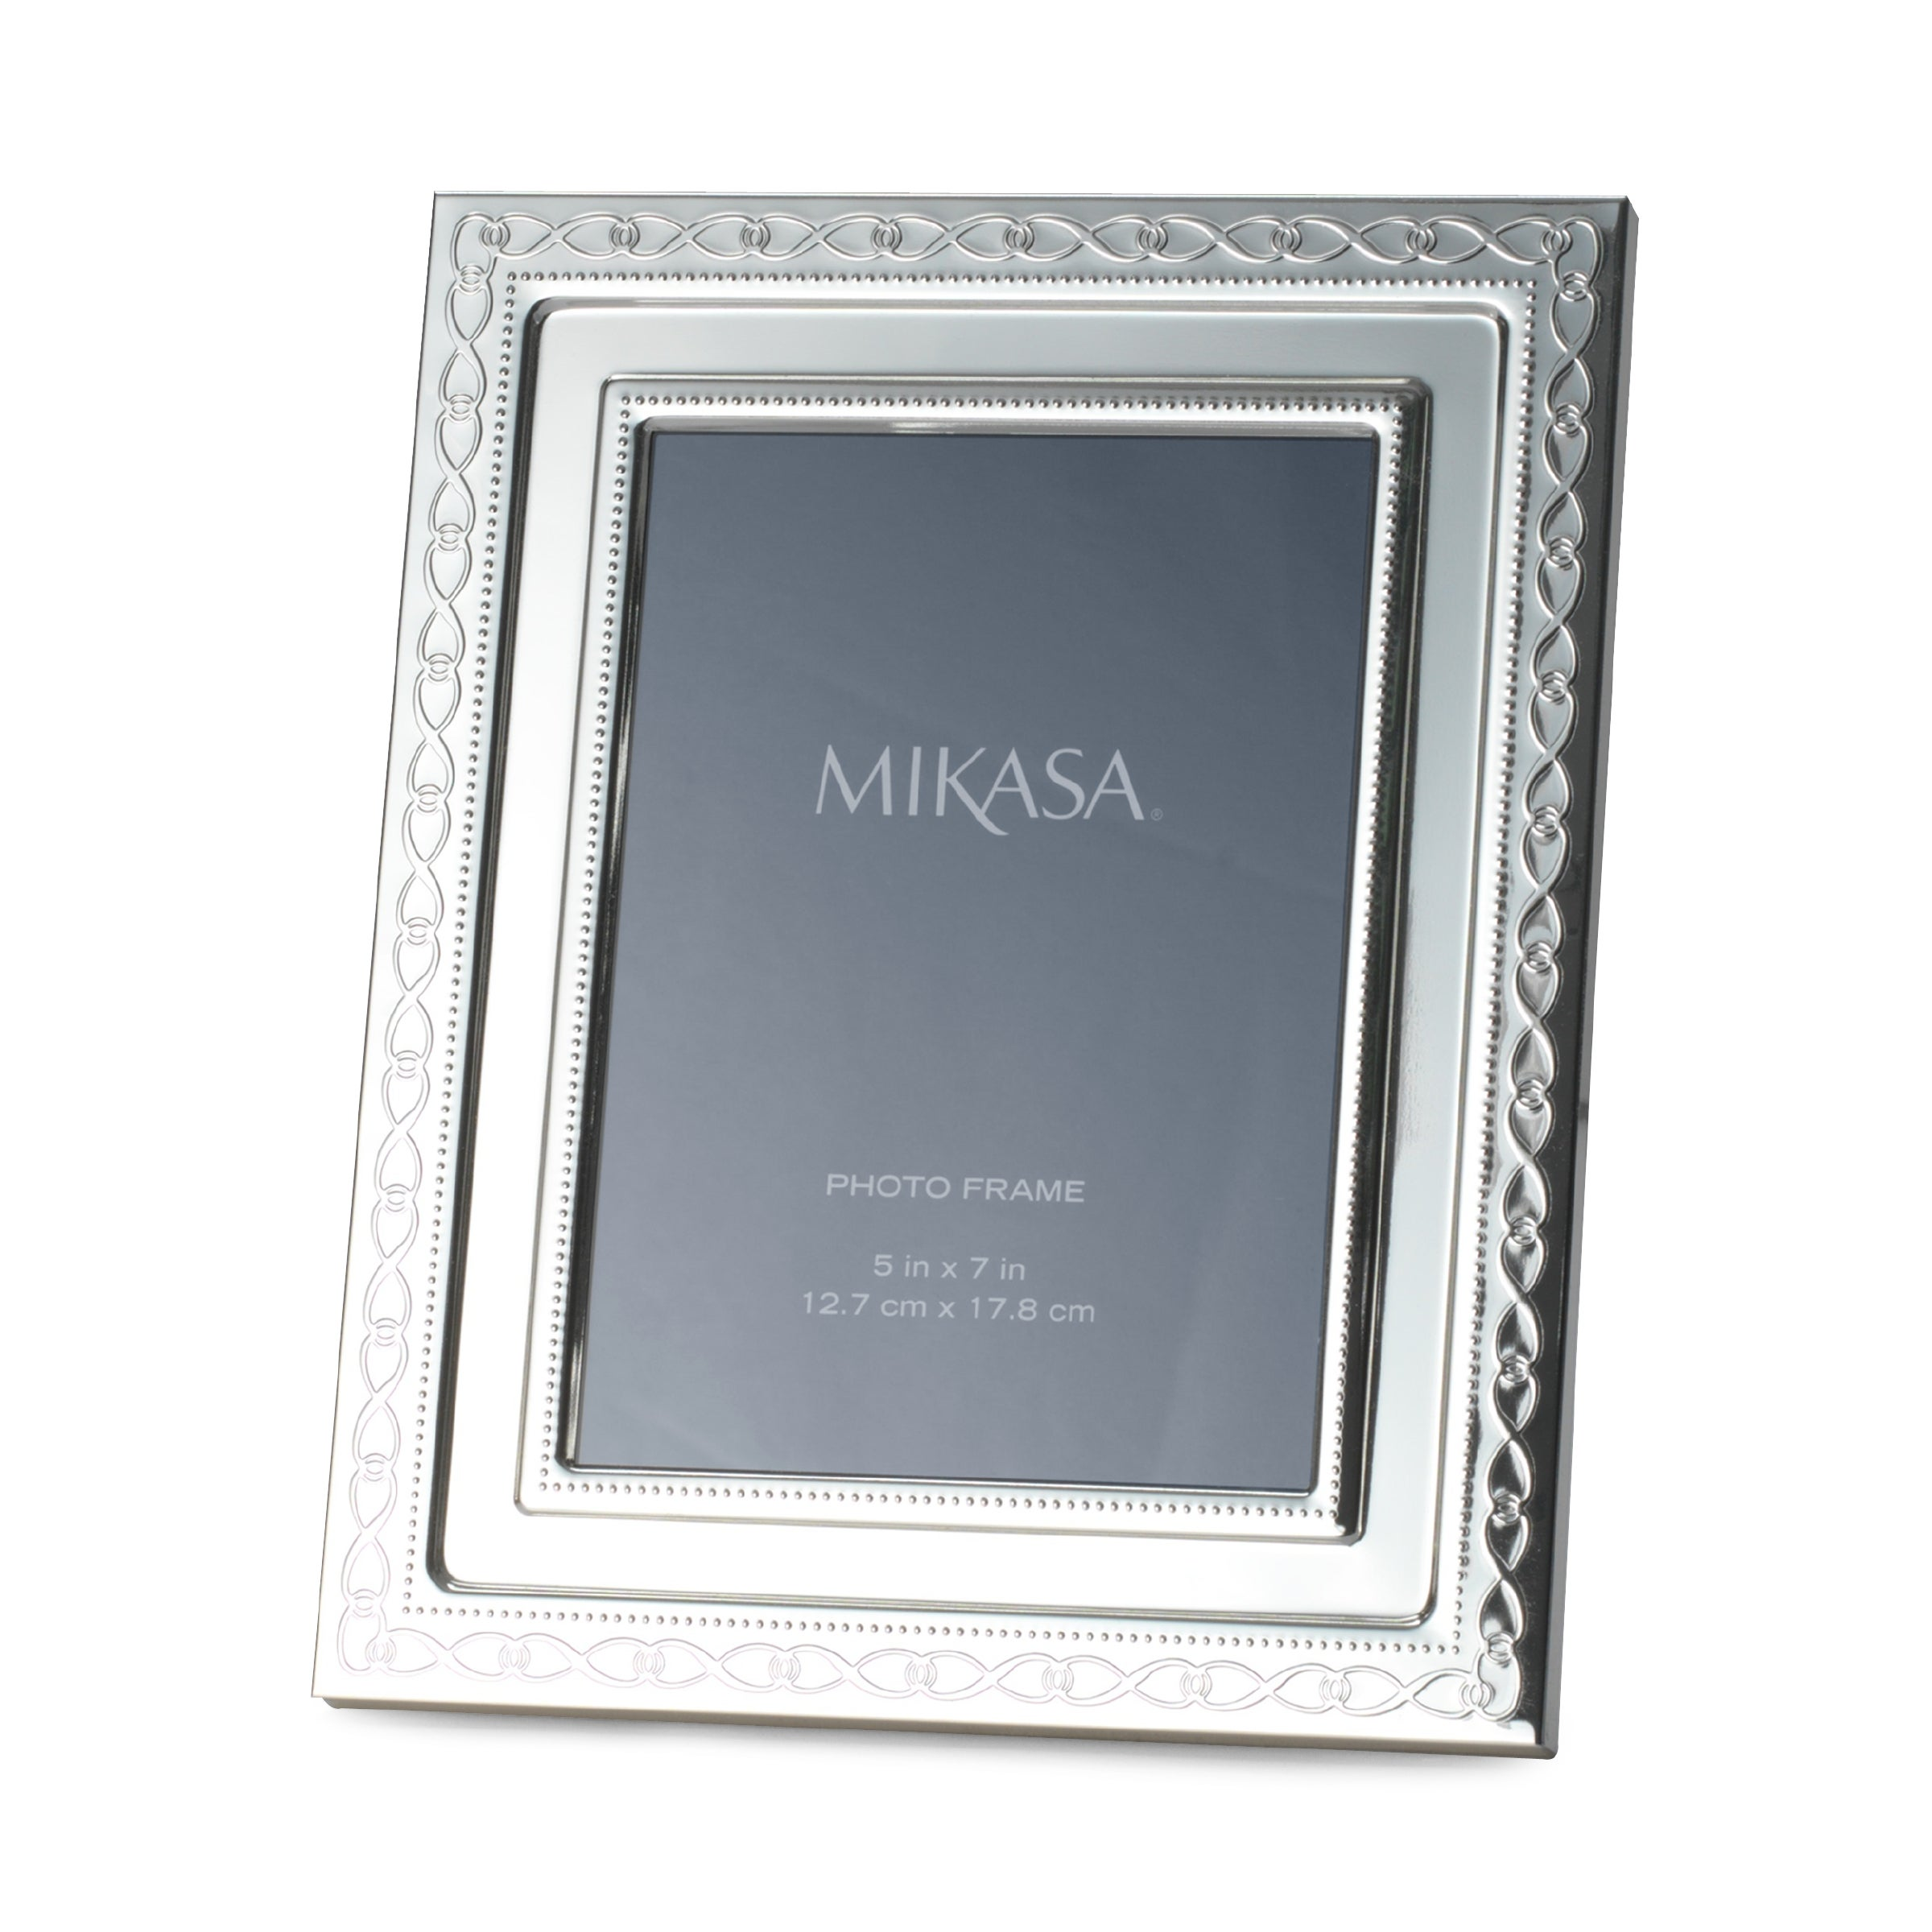 mikasa infinity band 5x7 inch photo frame